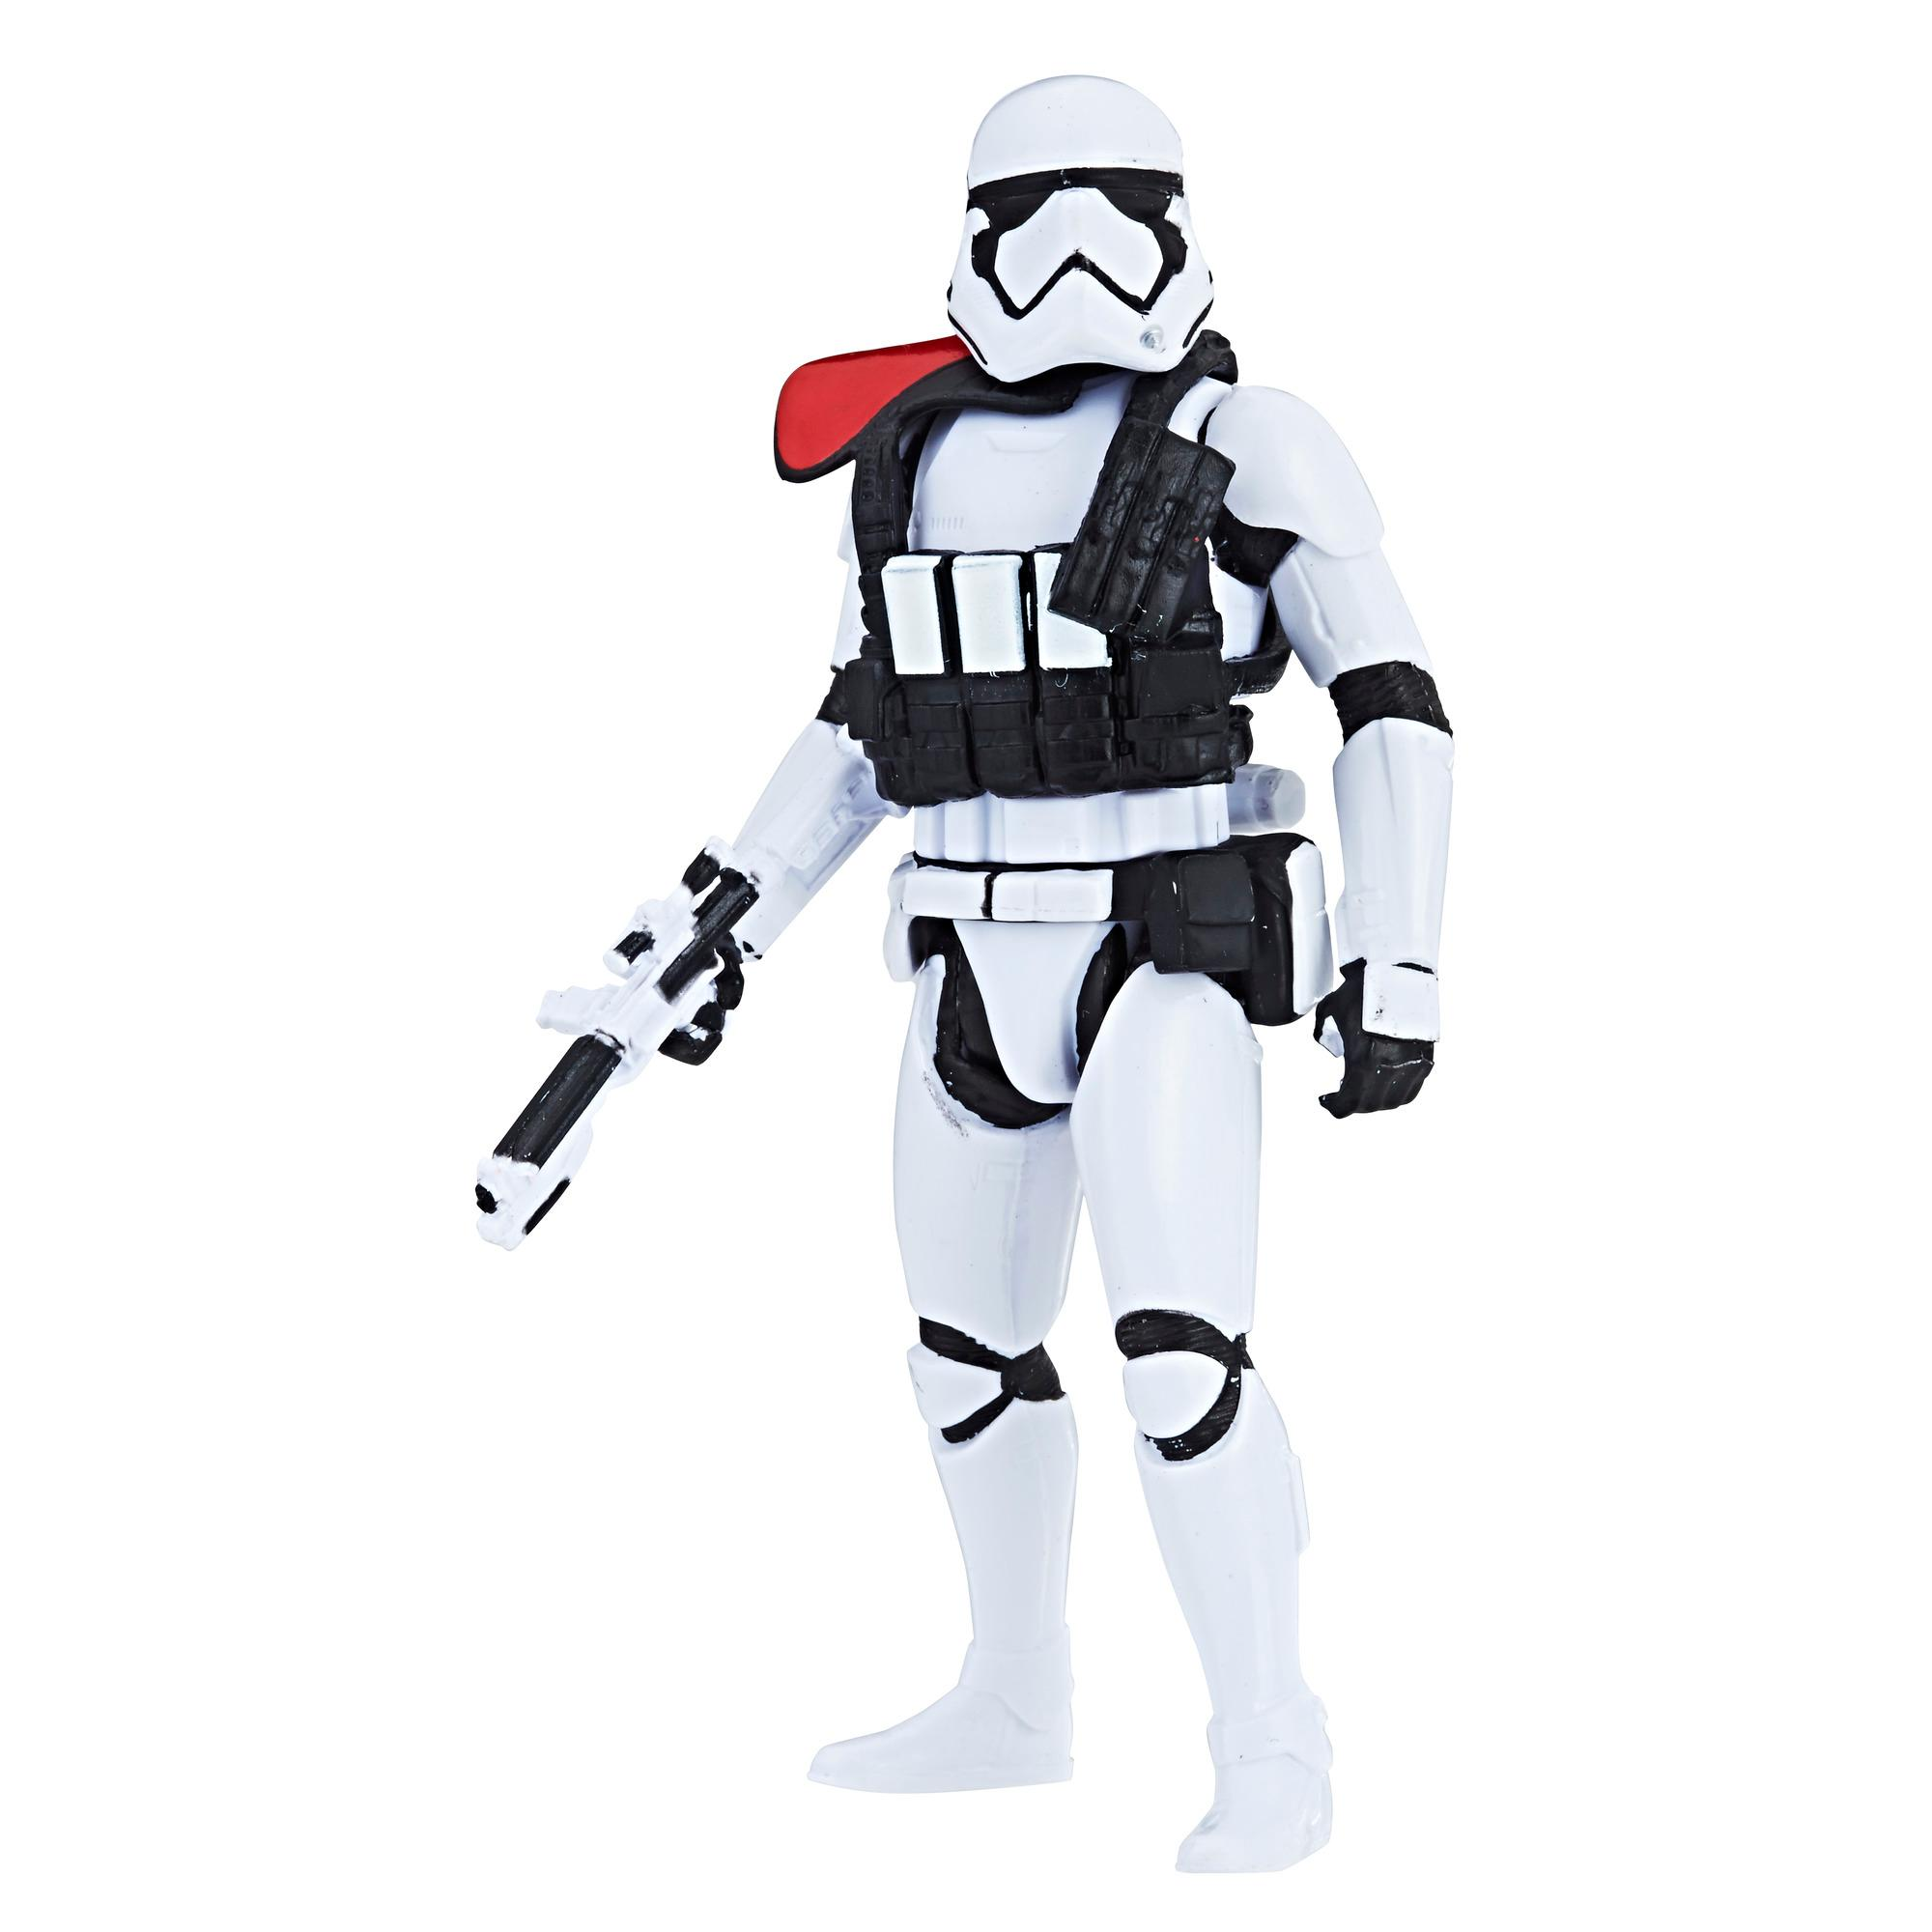 Star Wars Force Link 2.0 First Order Stormtrooper Figure